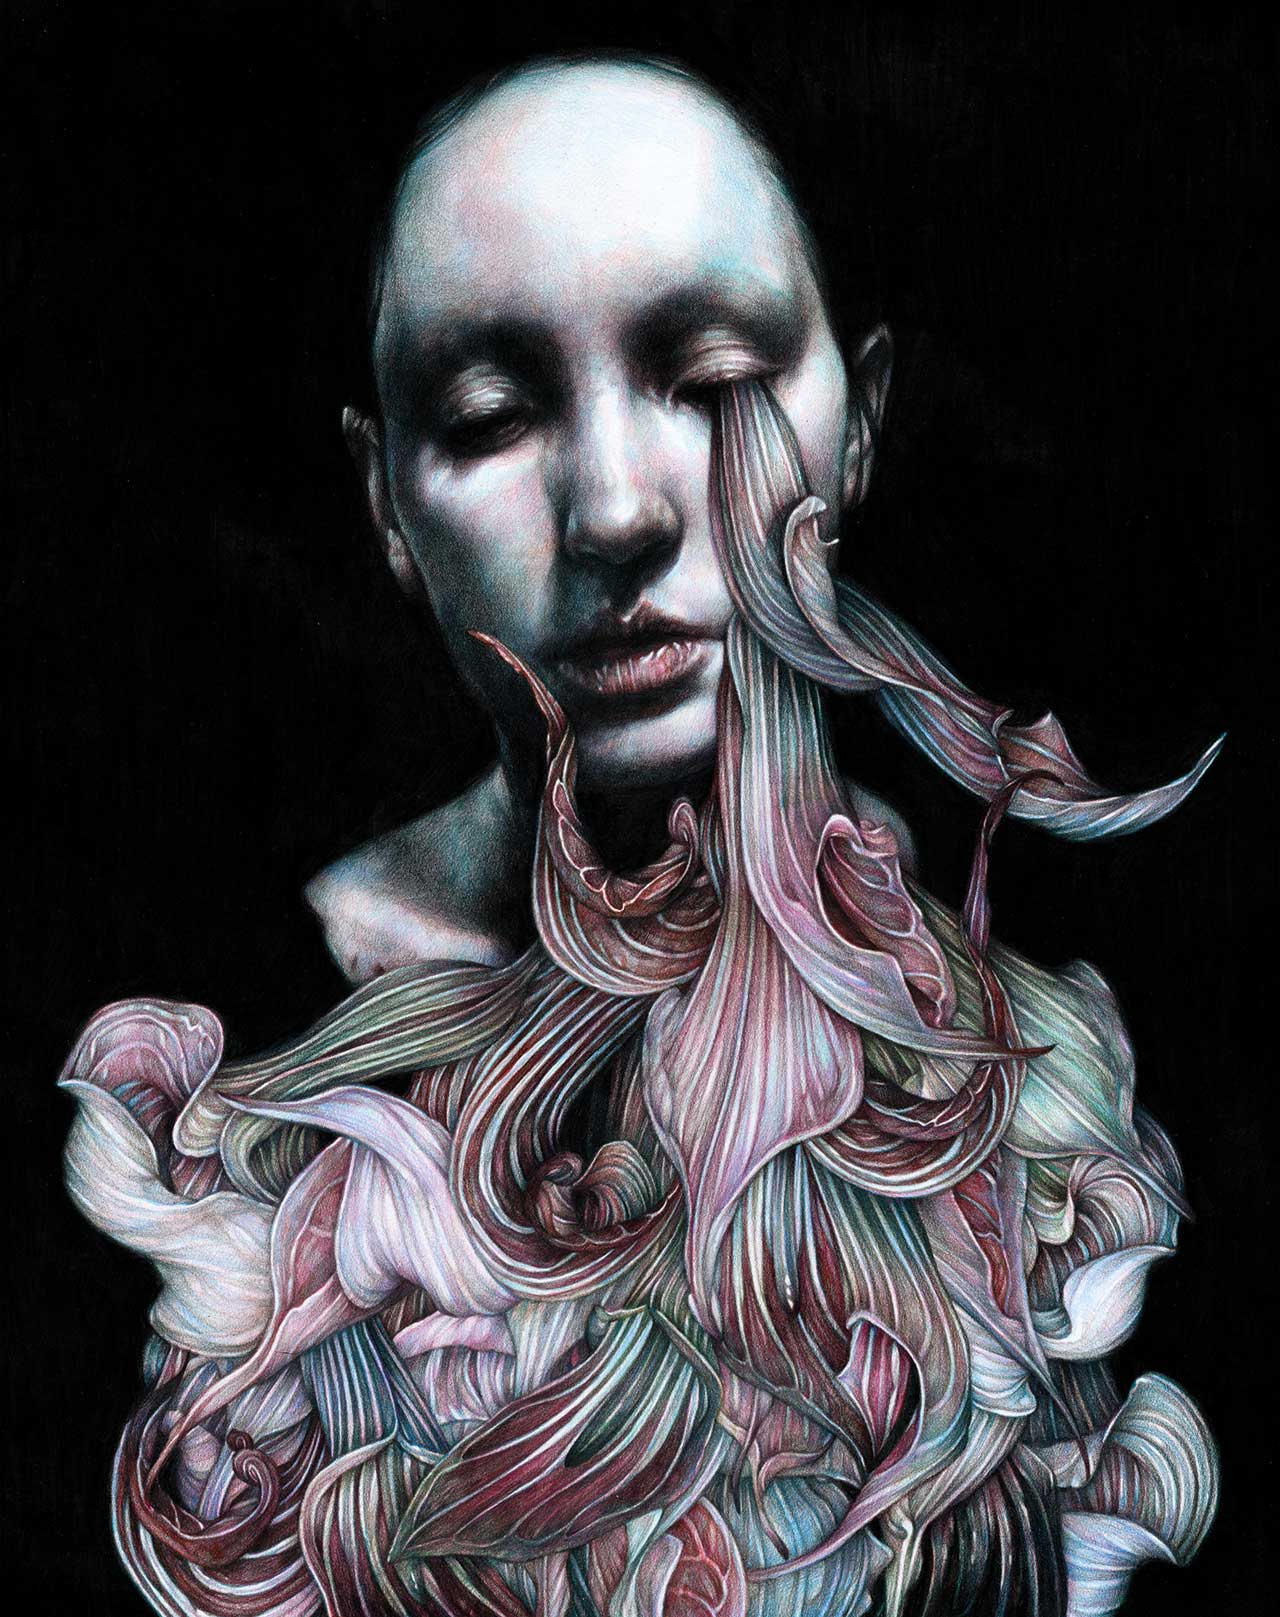 Marco Mazzoni, Madre, 2016. Colored pencils on paper, 48 x 38cm © Marco Mazzoni.